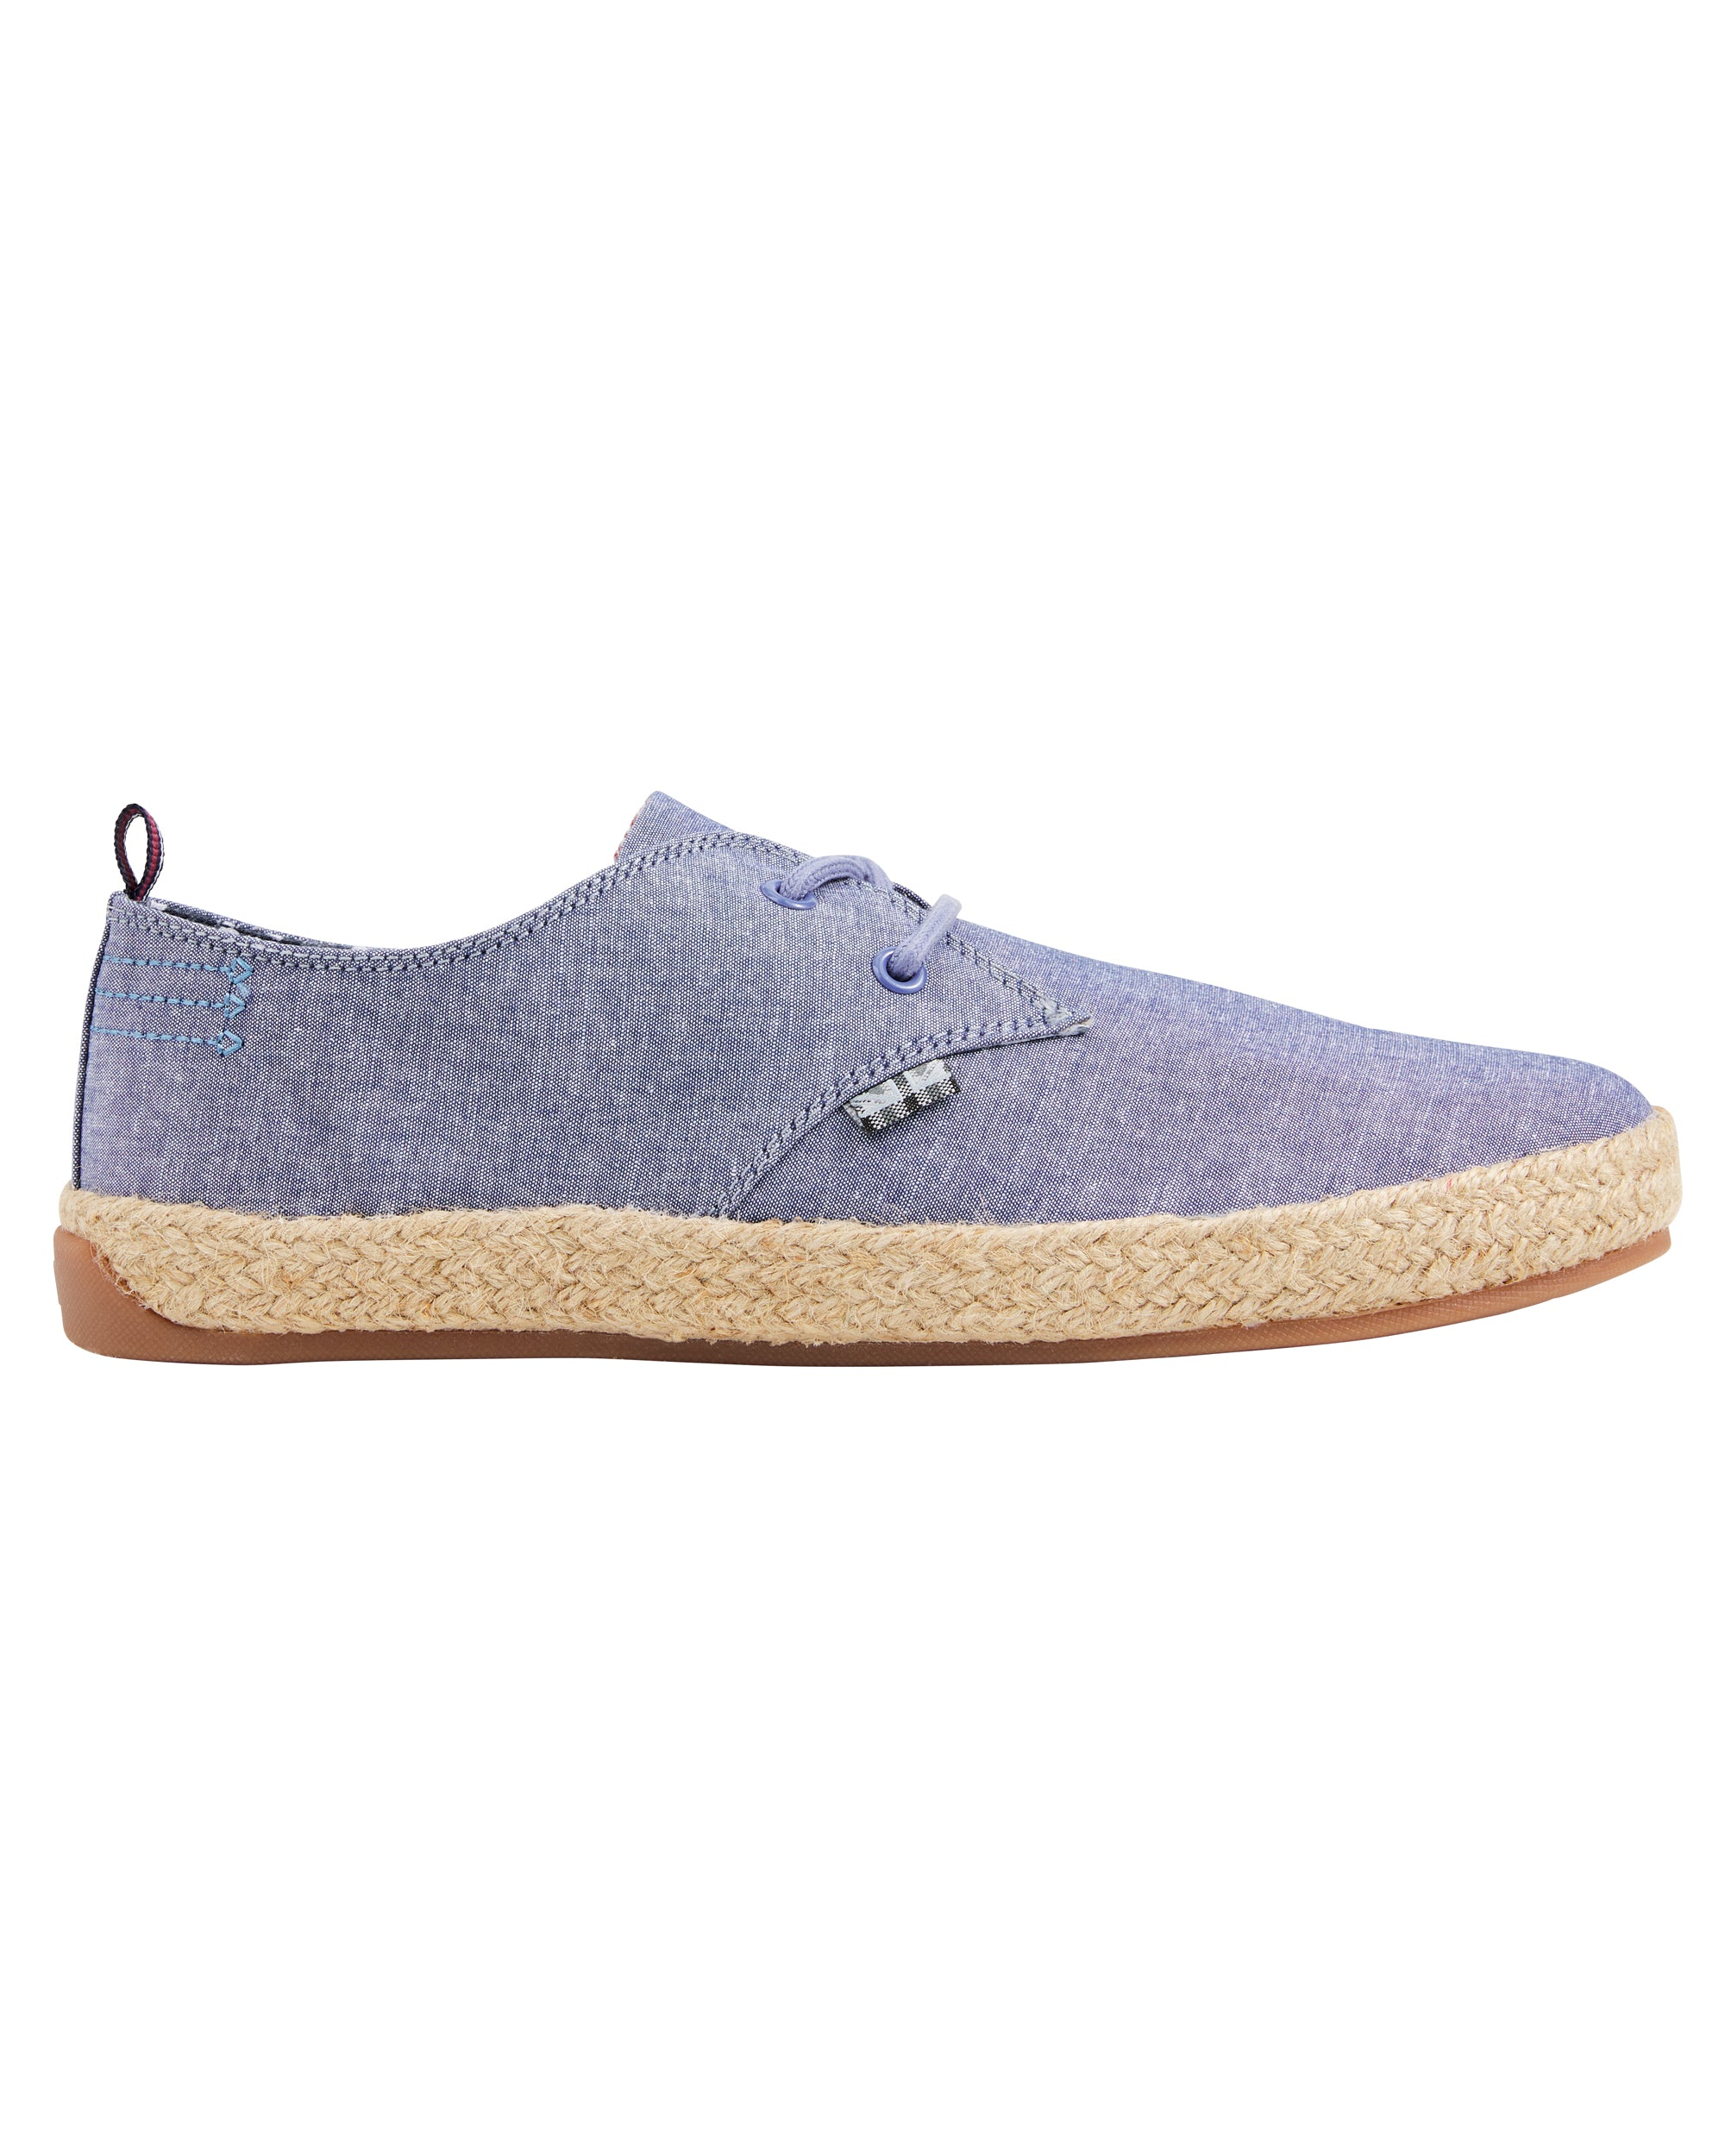 New Prill Two-Tone Oxford Sneaker - Blue